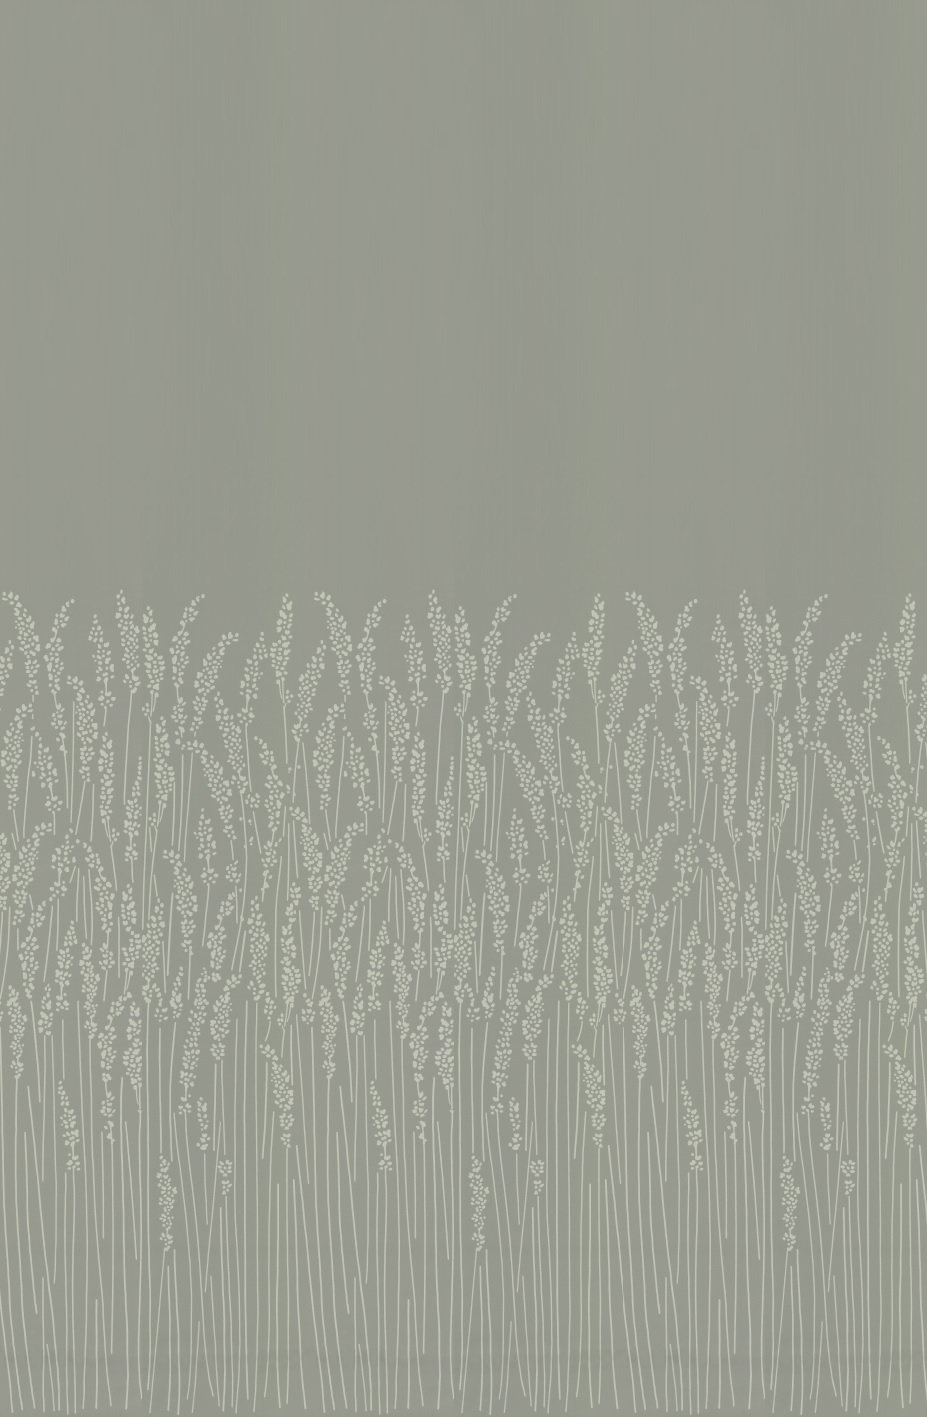 Feather Grass Wallpaper - Dark Grey - by Farrow & Ball